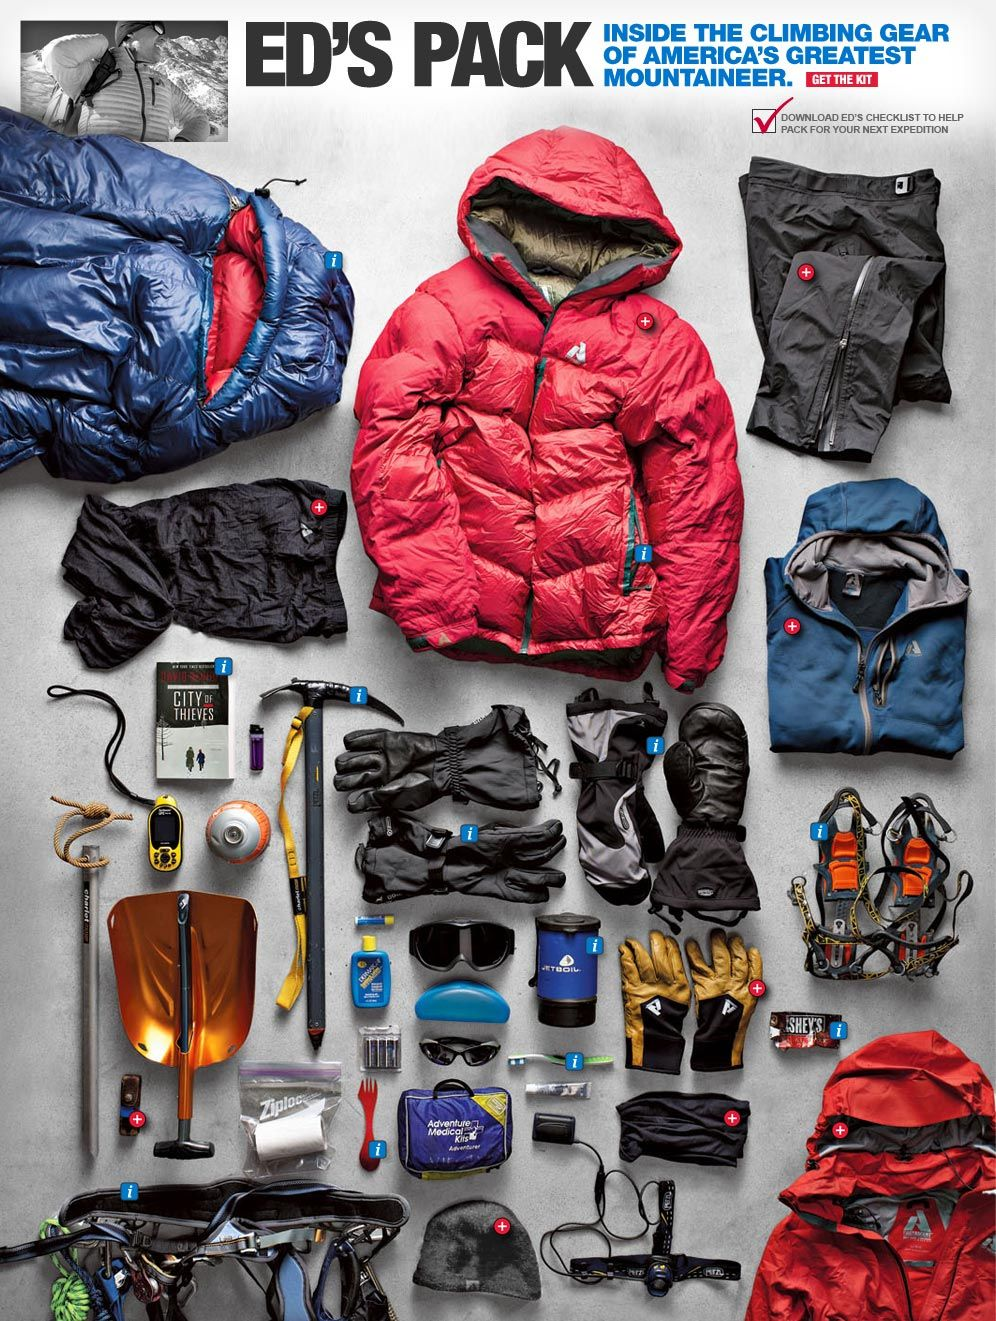 Each day brings me one day closer to another day in the mountains vbs pinterest hiking for Travel expedition gear